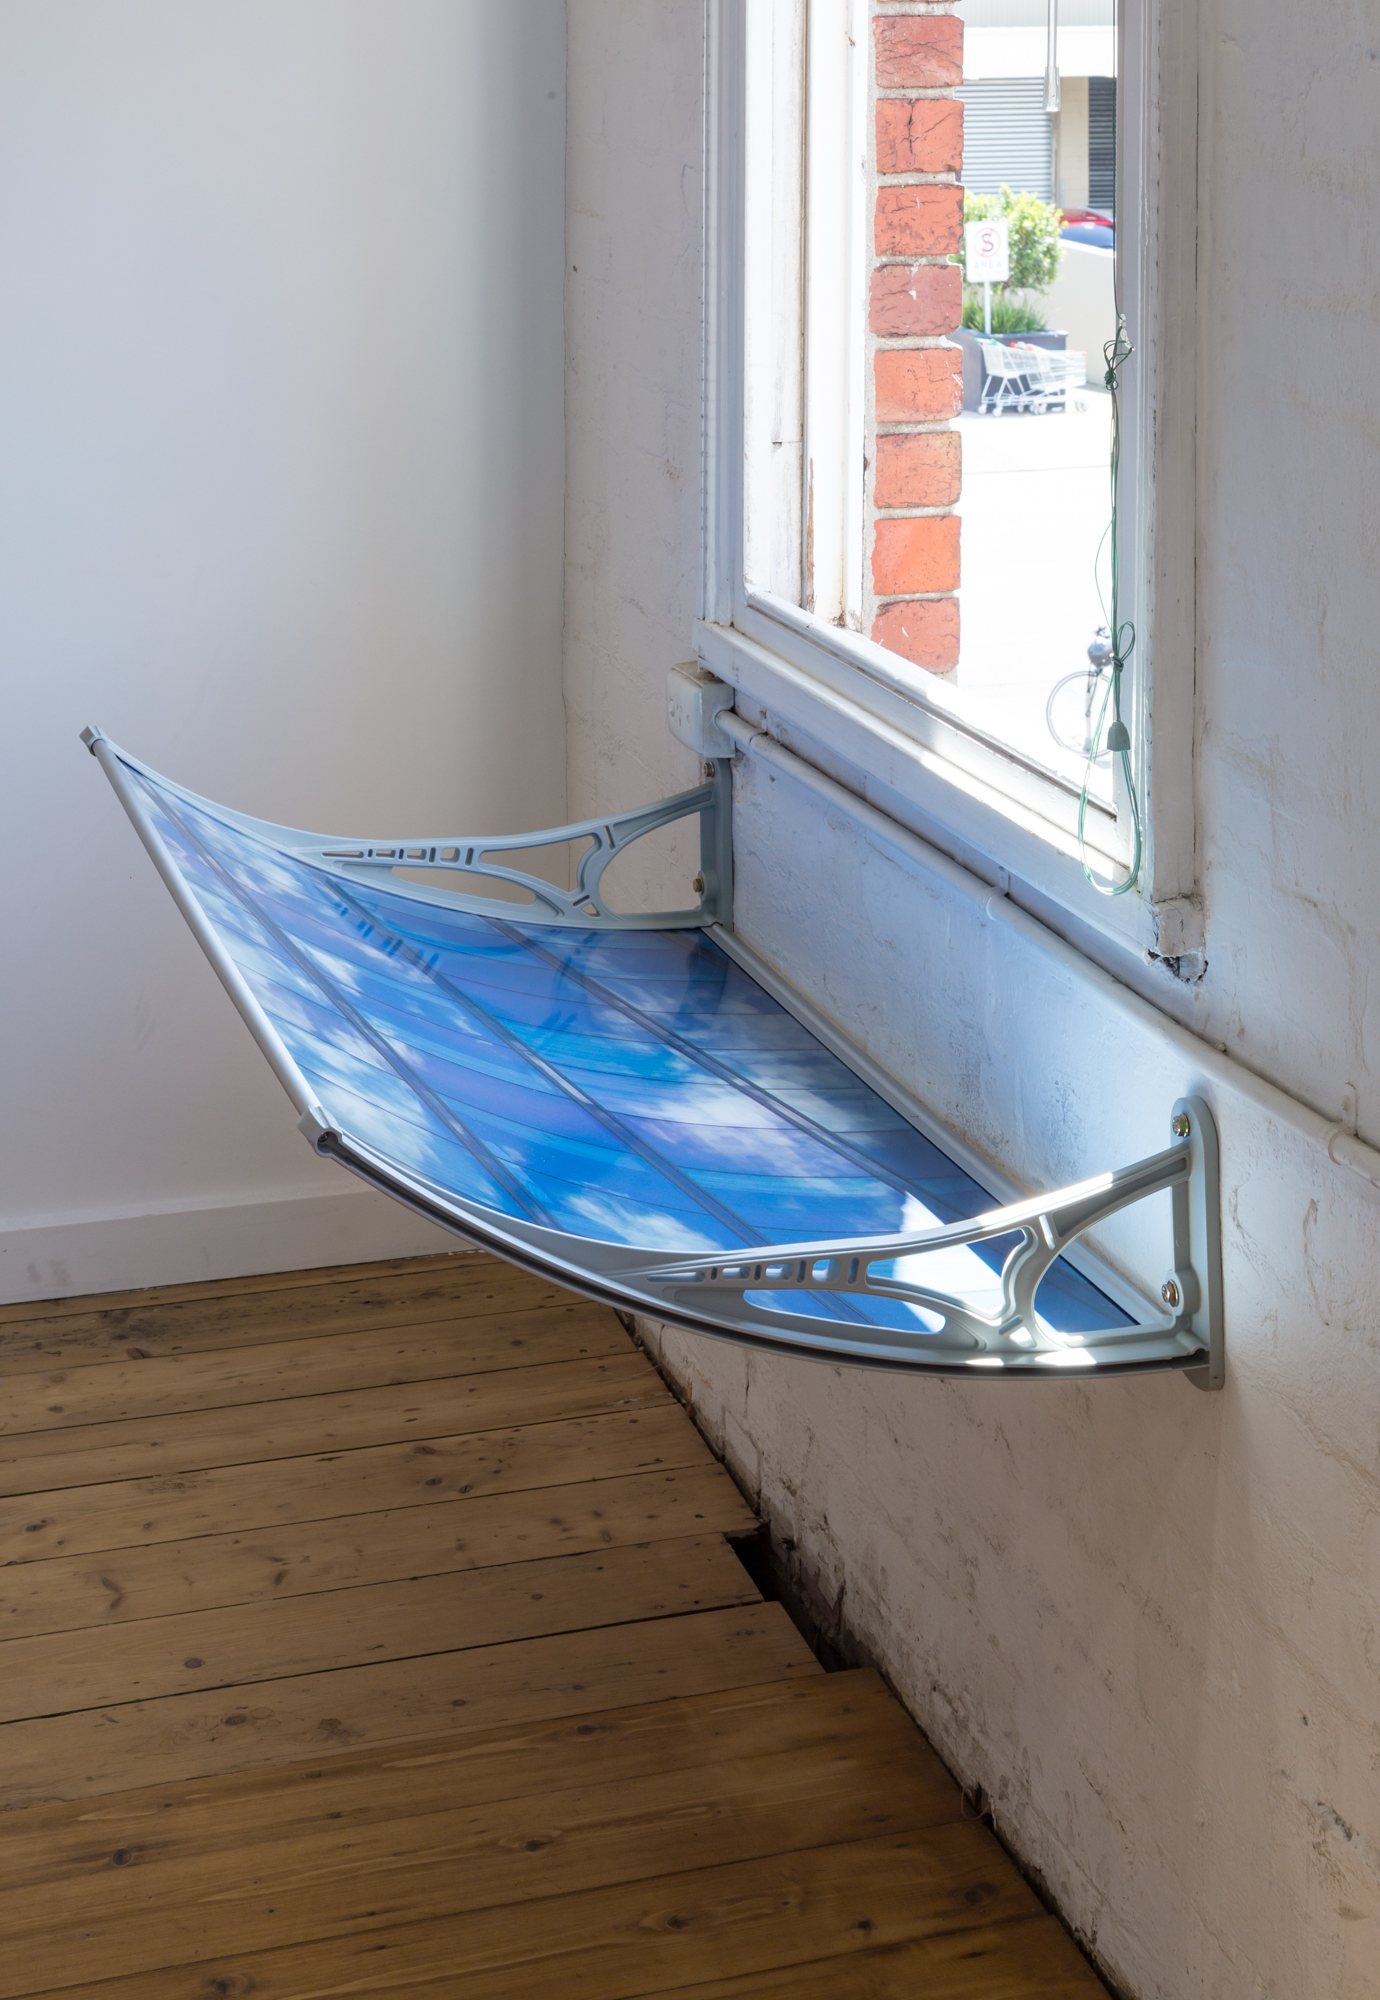 Virginia Overell,  Objective Image , 2017 digital print on metallic paper, polycarbonate canopy photo by André Piguet